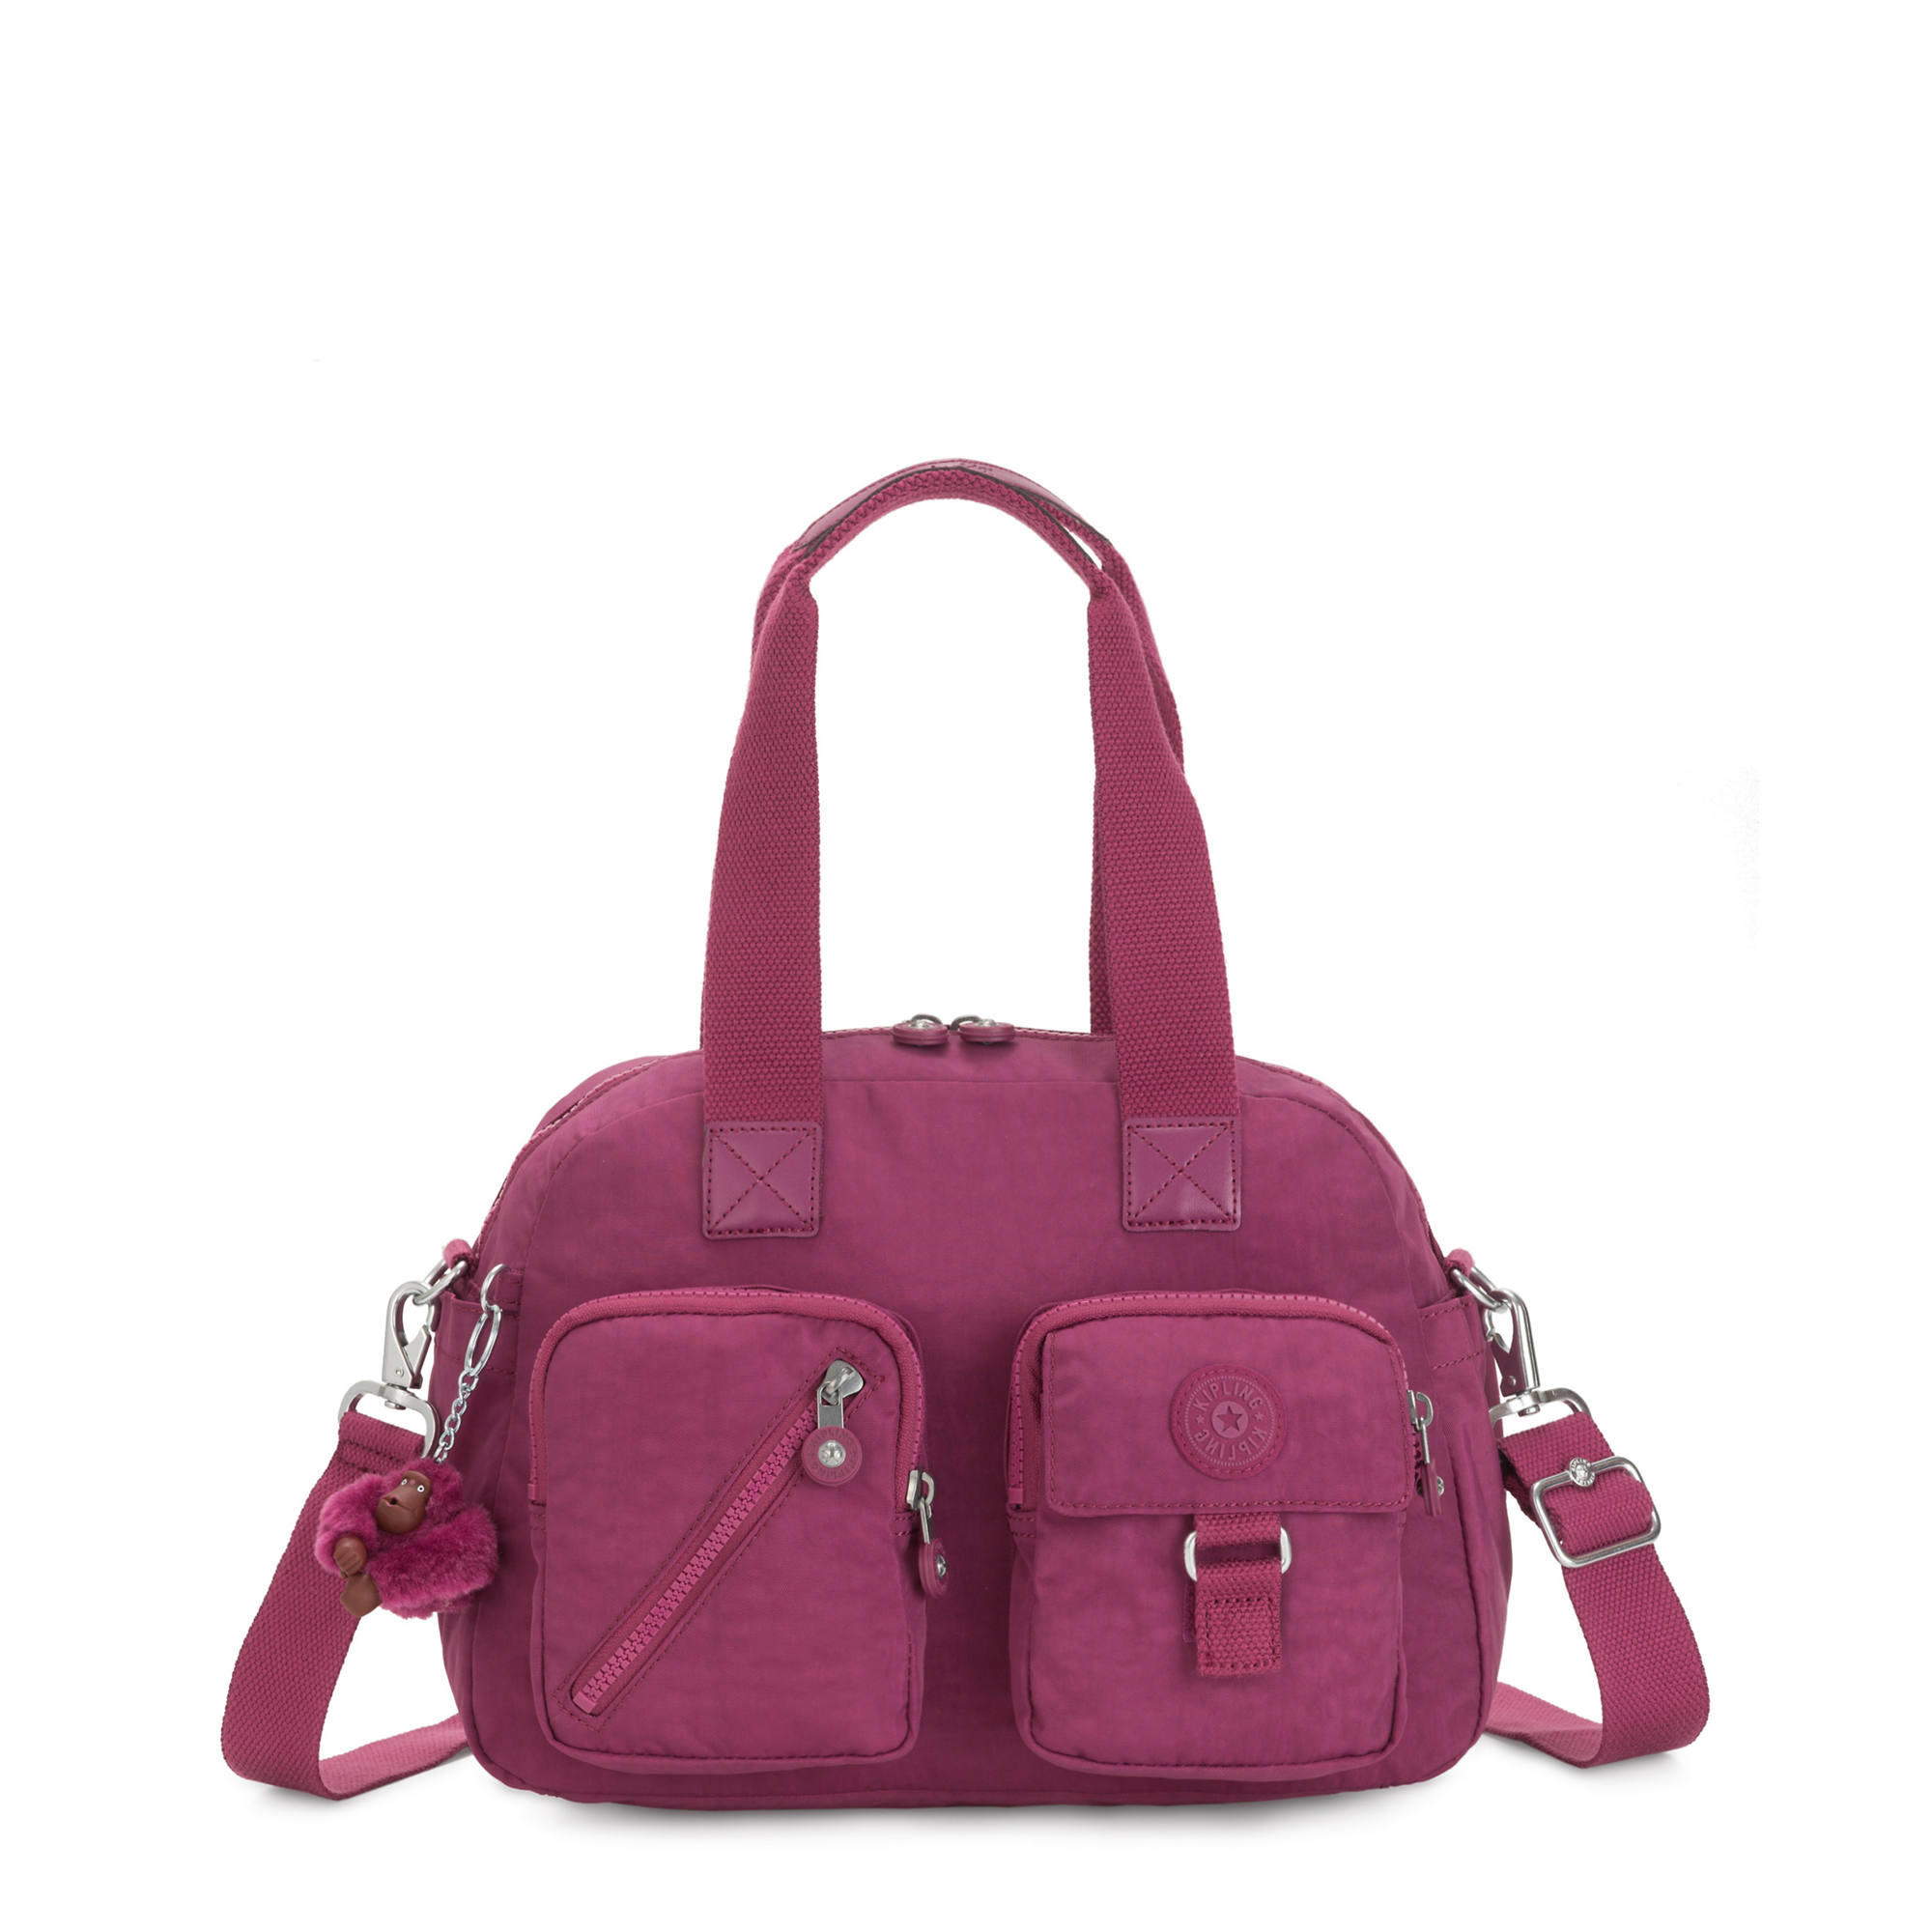 Defea Handbag Kipling